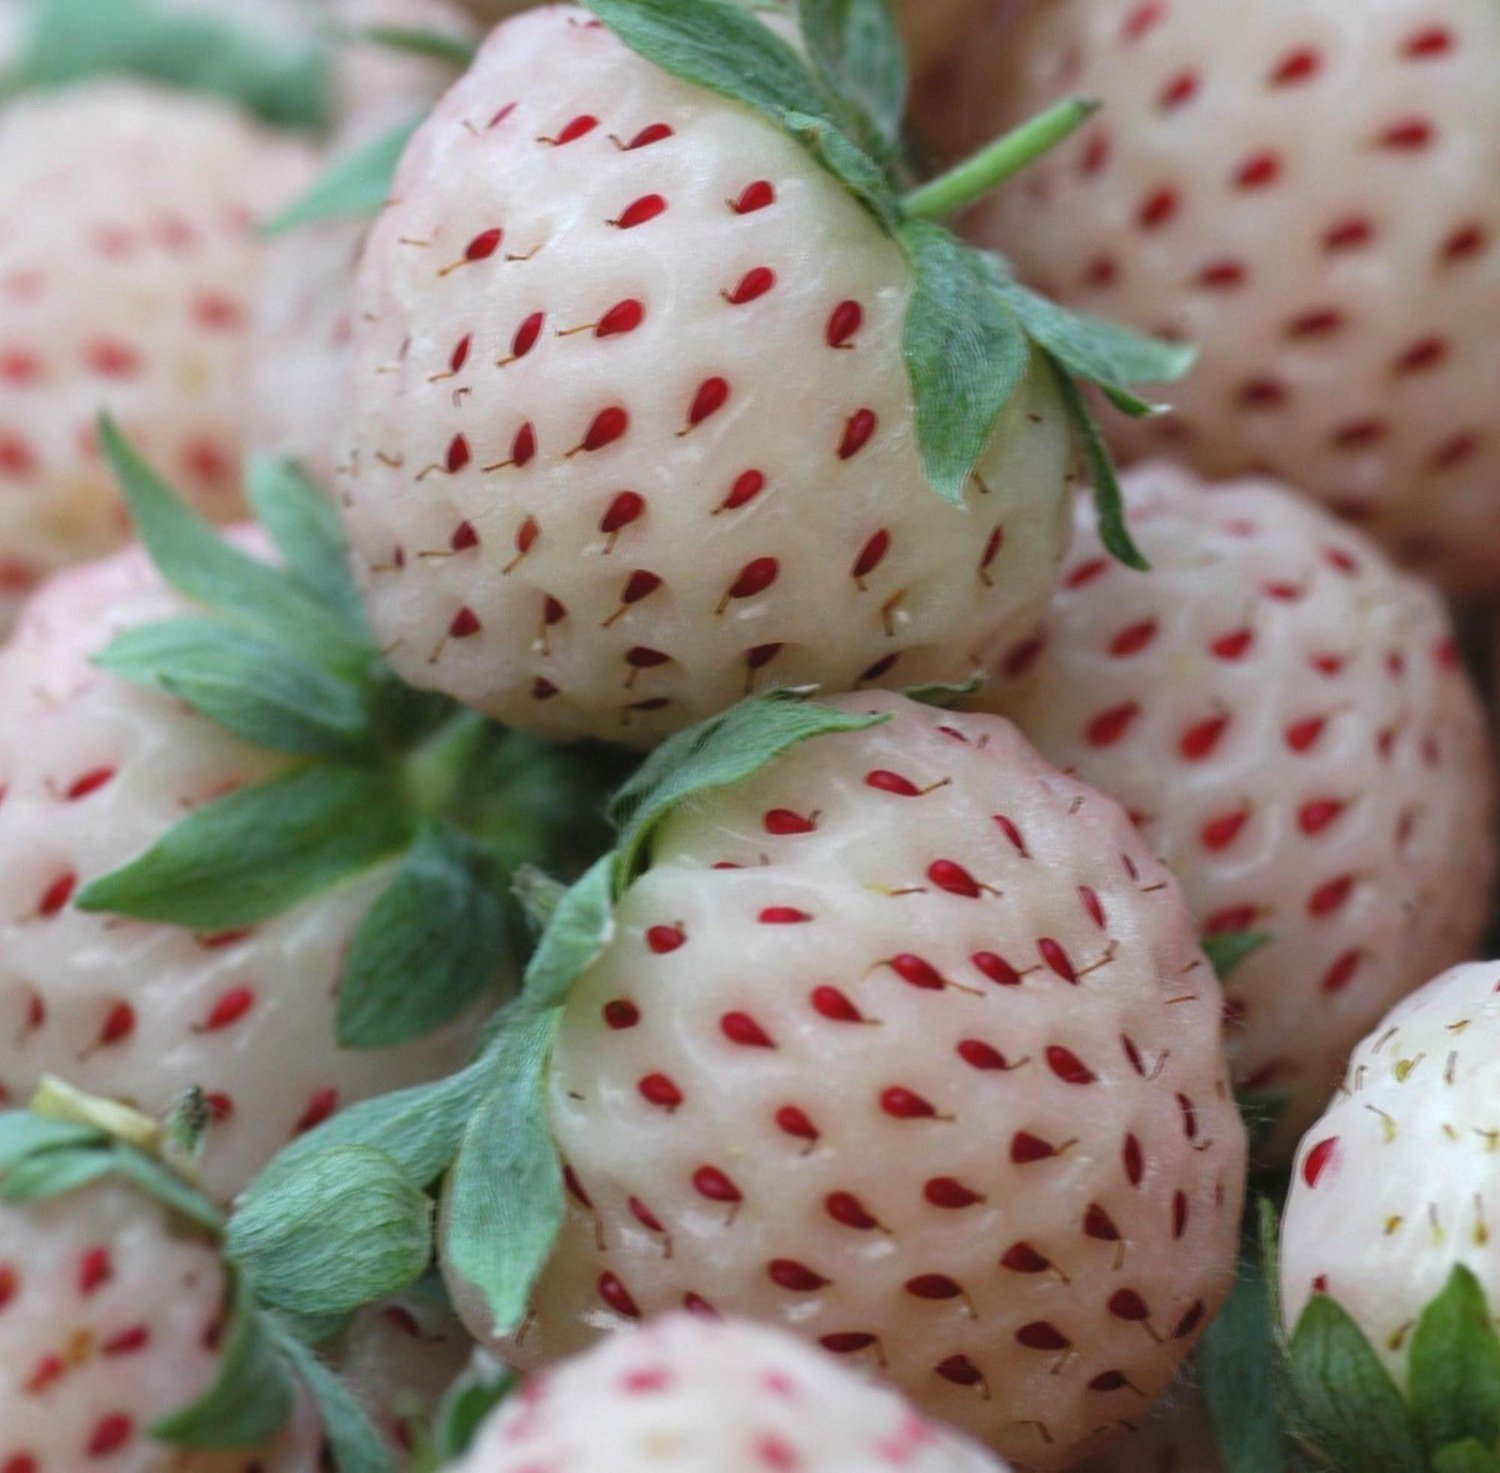 White Strawberry 50 seeds White Soul Strawberry Exotic * Rare * *SHIPPING FROM US* CombSH I51